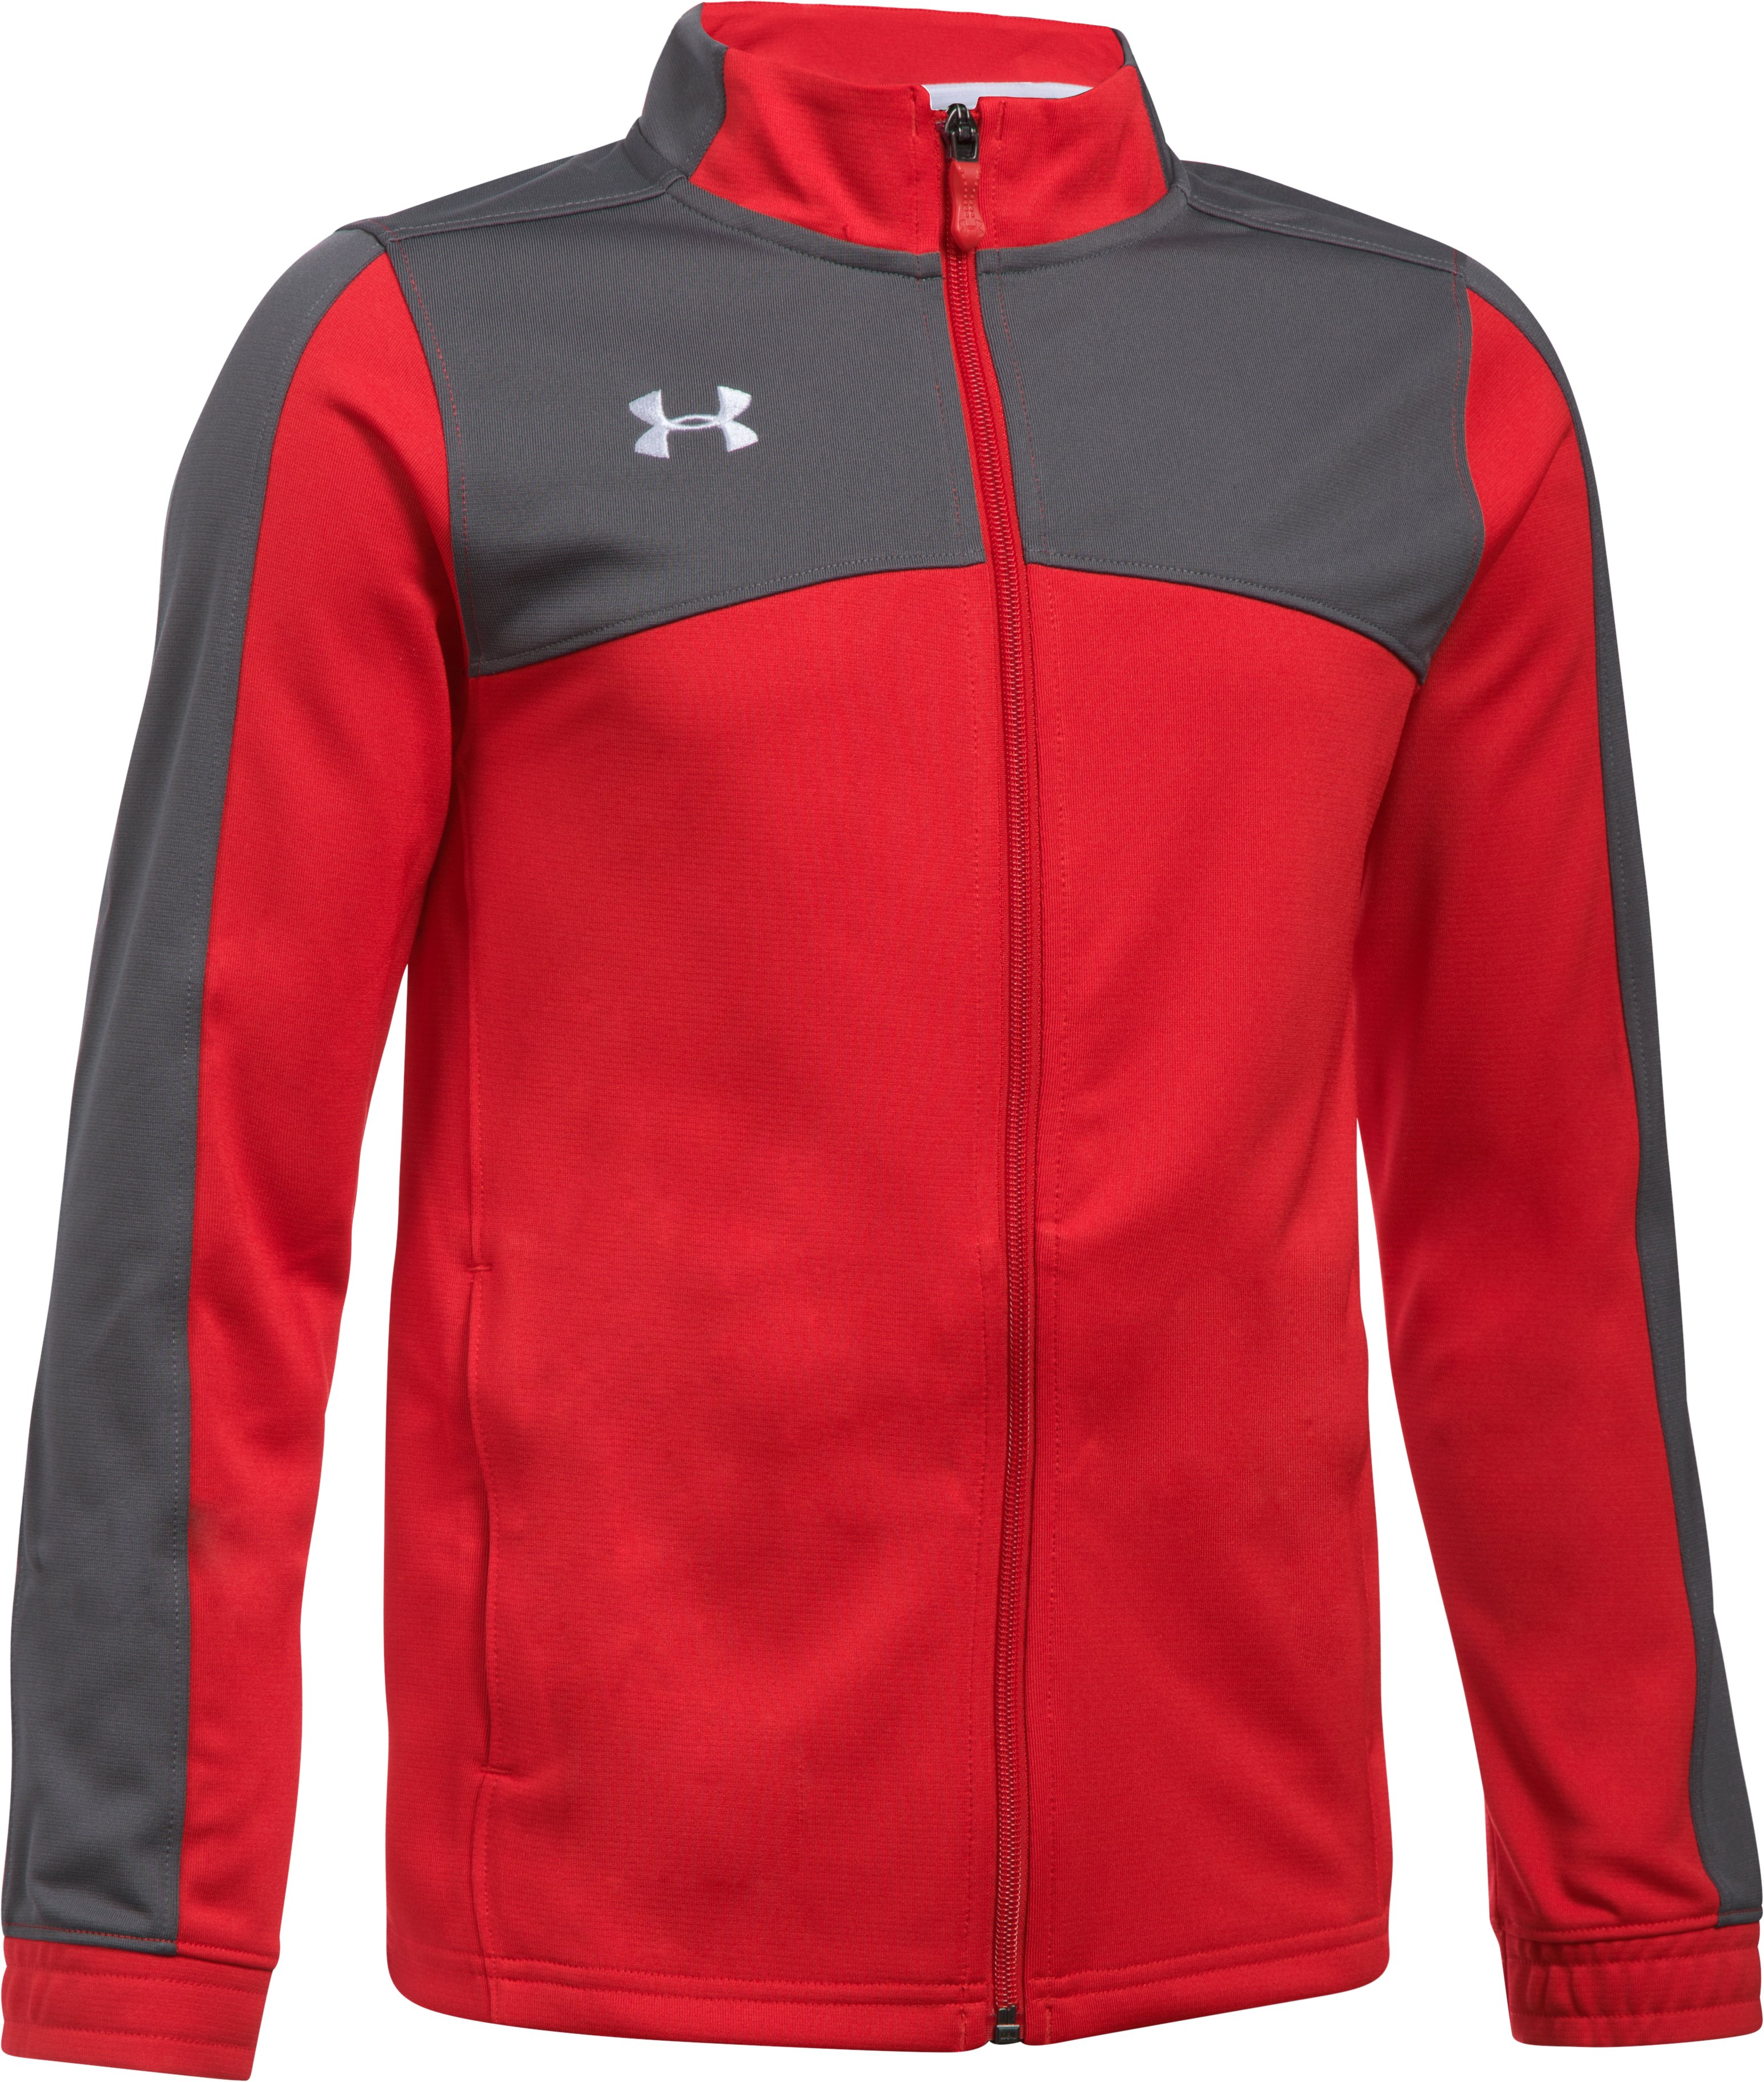 red track suits Boys' UA Futbolista Soccer Track Jacket It is the perfect fit and very comfortable....My son loves the feel of this jacket....Great product, Excellent Quality!